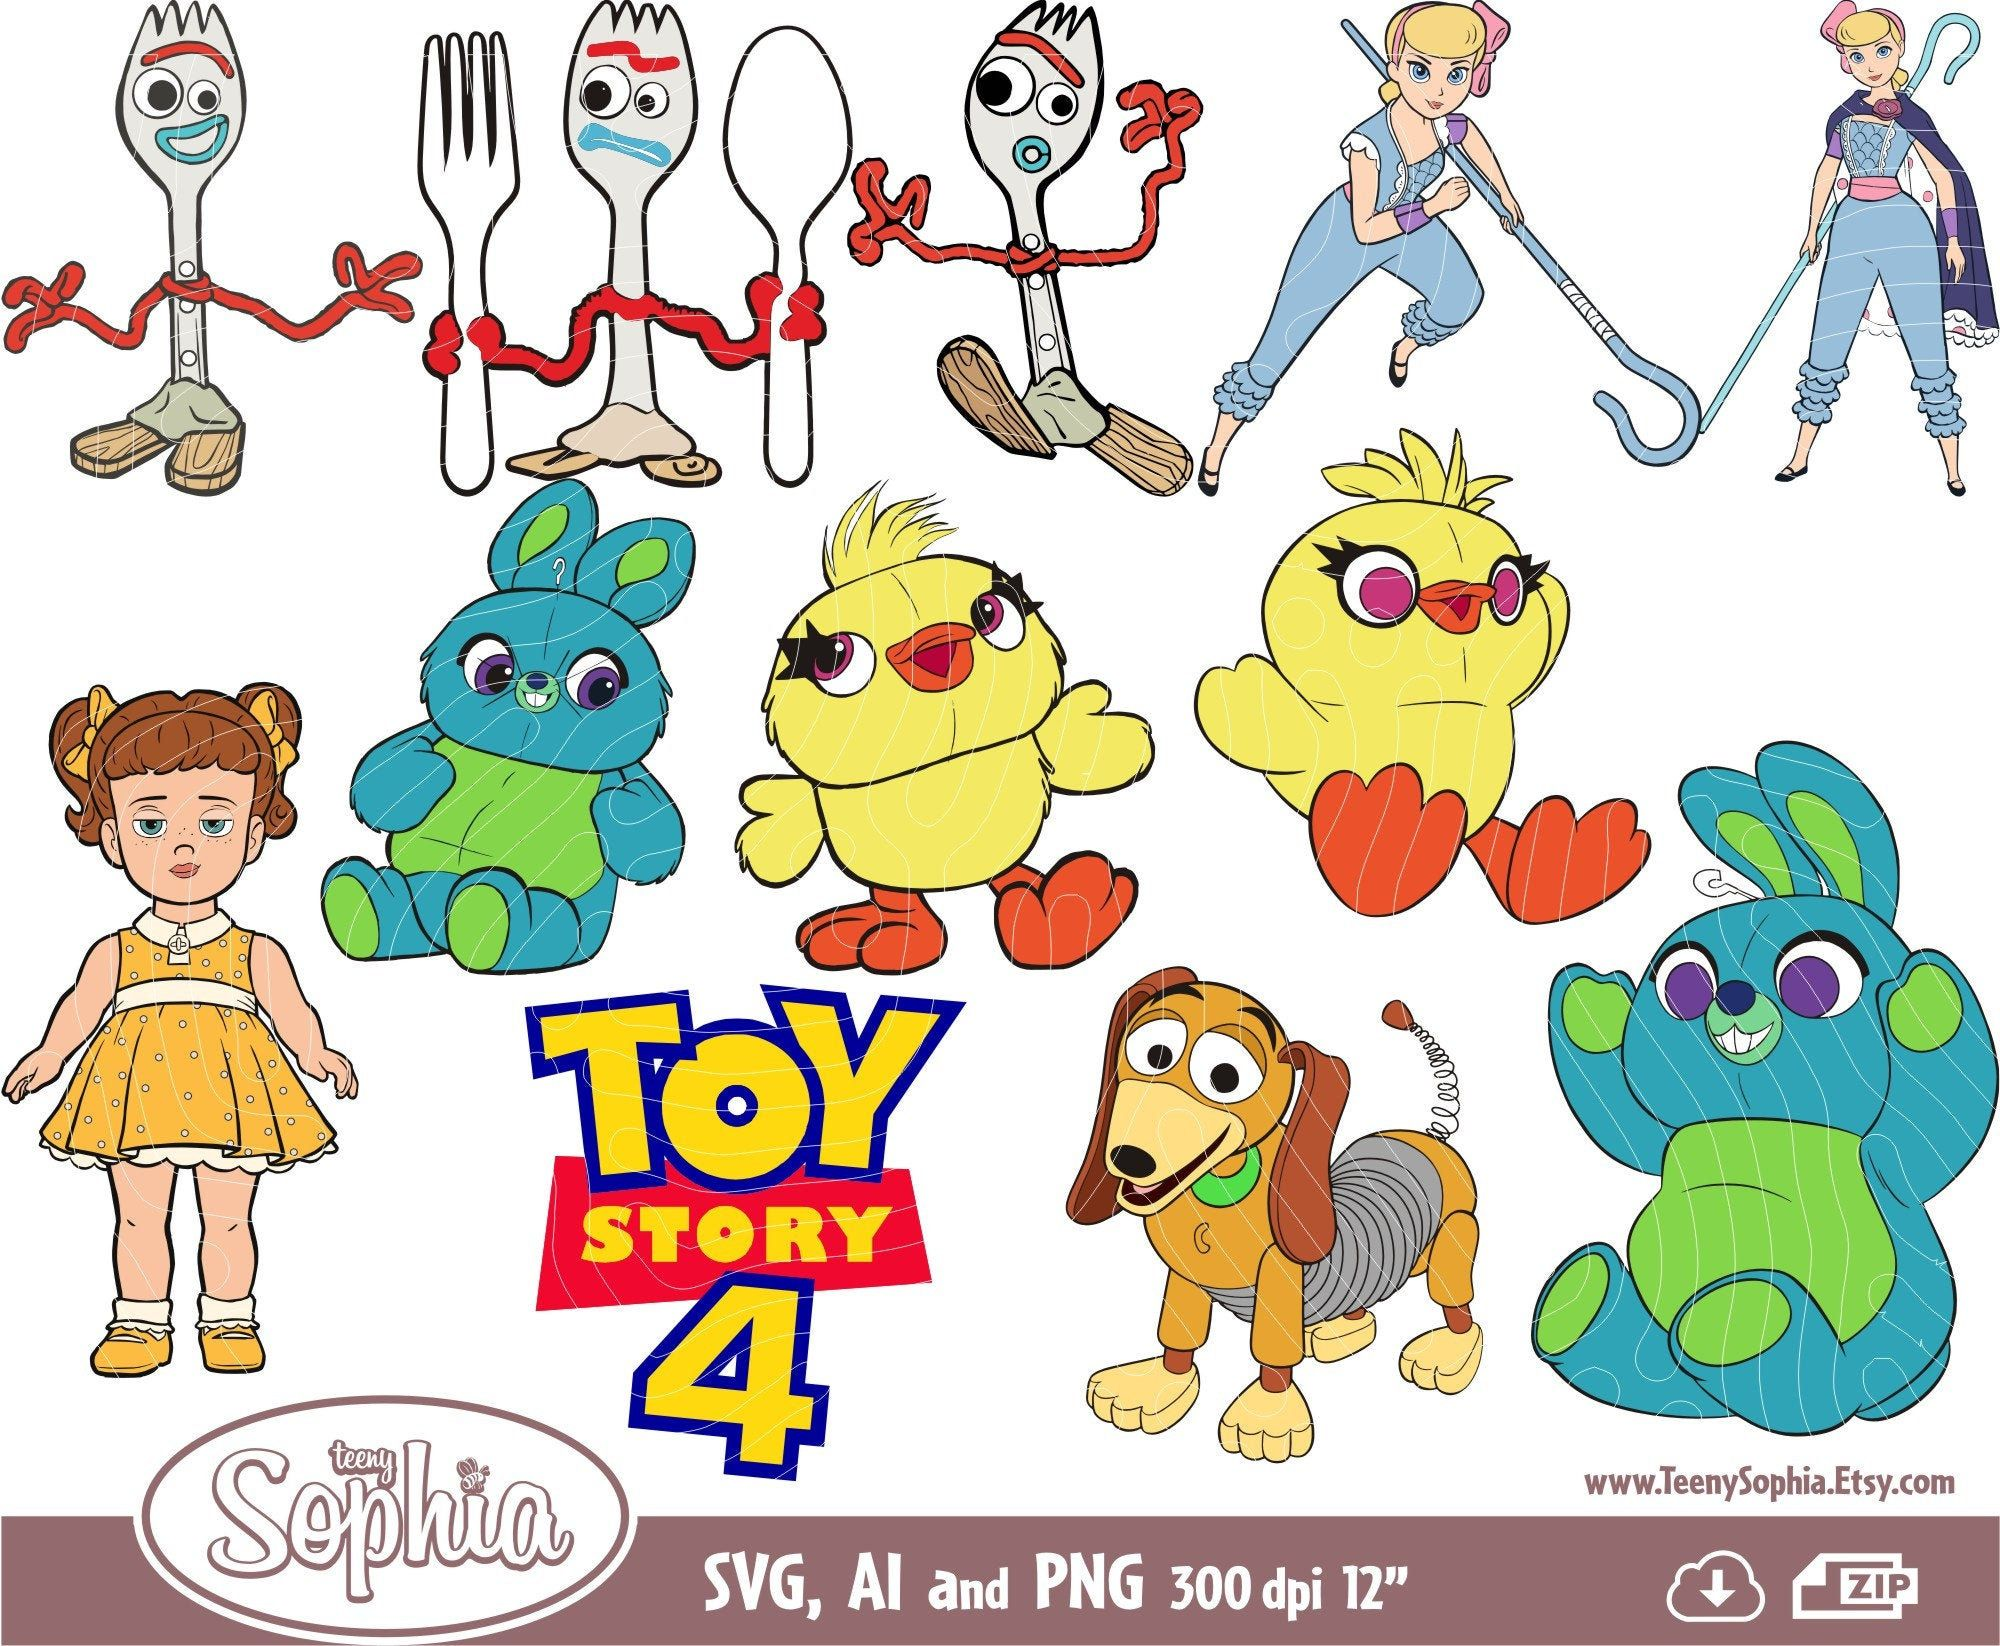 Pin By Julieta Shictong On Toy Story Party Ideas Digital Sticker Drawing For Kids Toy Story